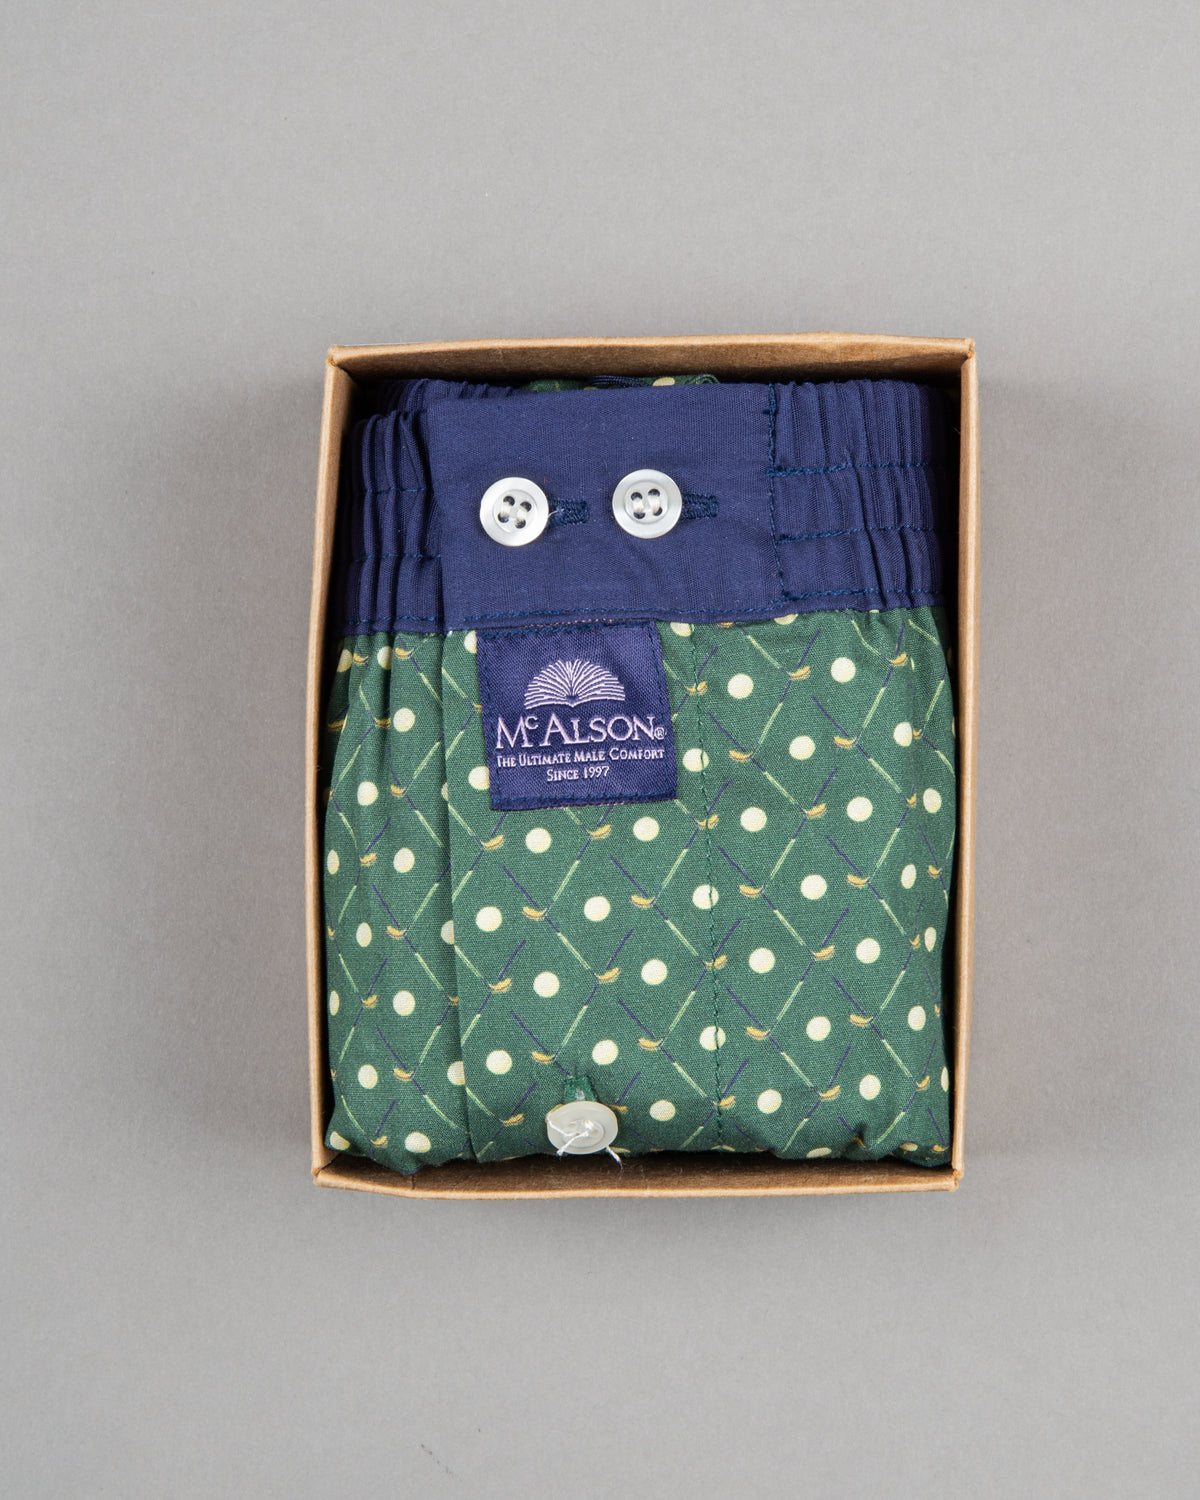 Mc Alson boxer shorts 100% cotton blue green pattern